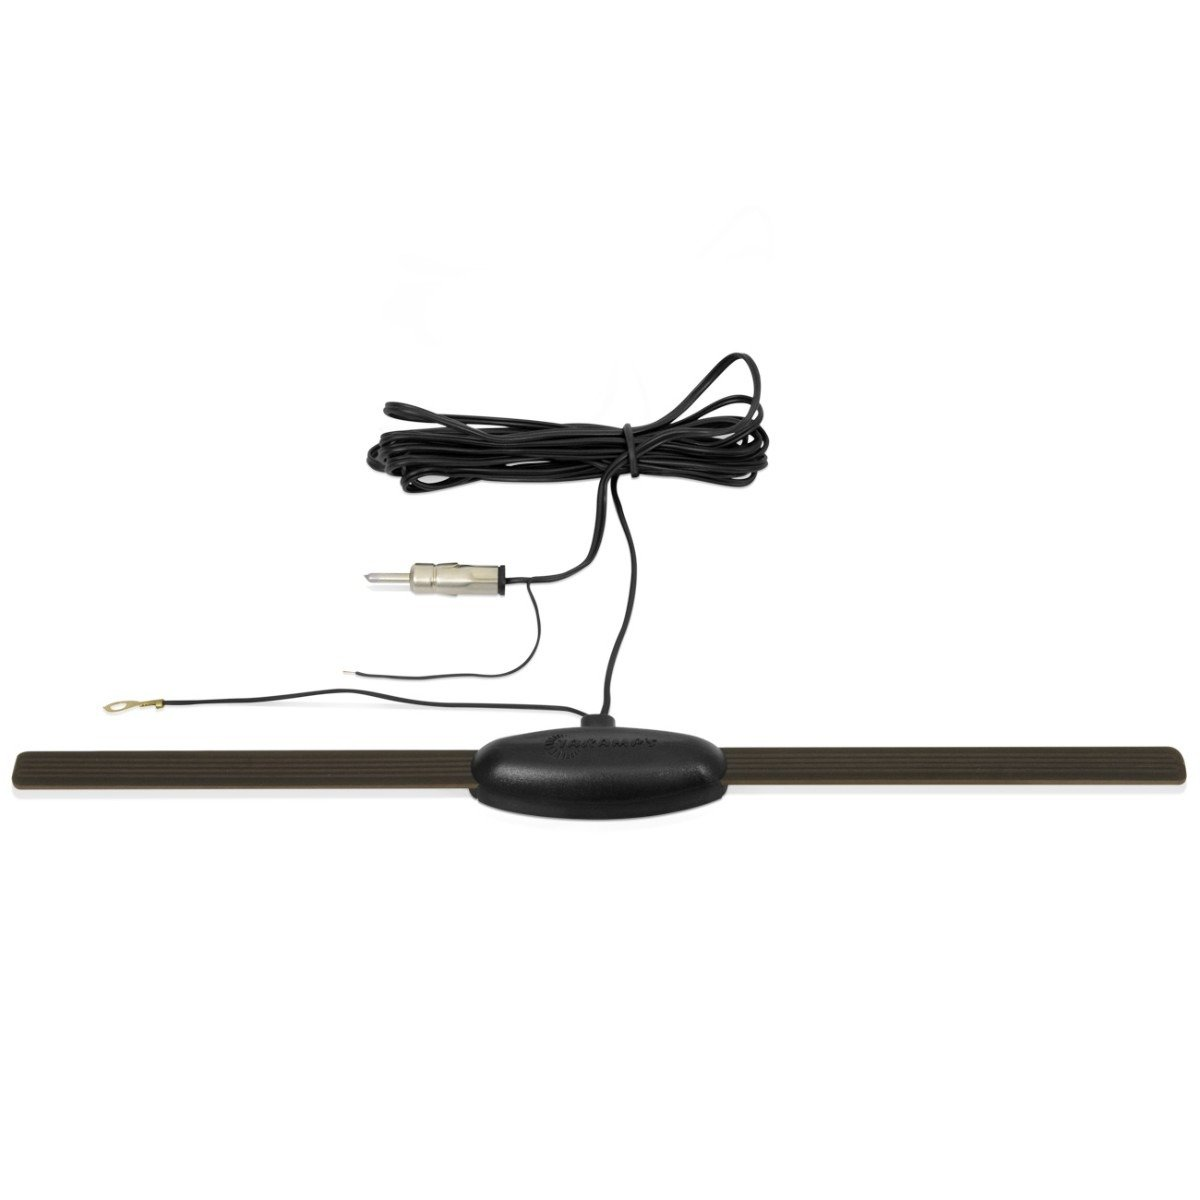 Taramps TFM-1080i HD Antenna